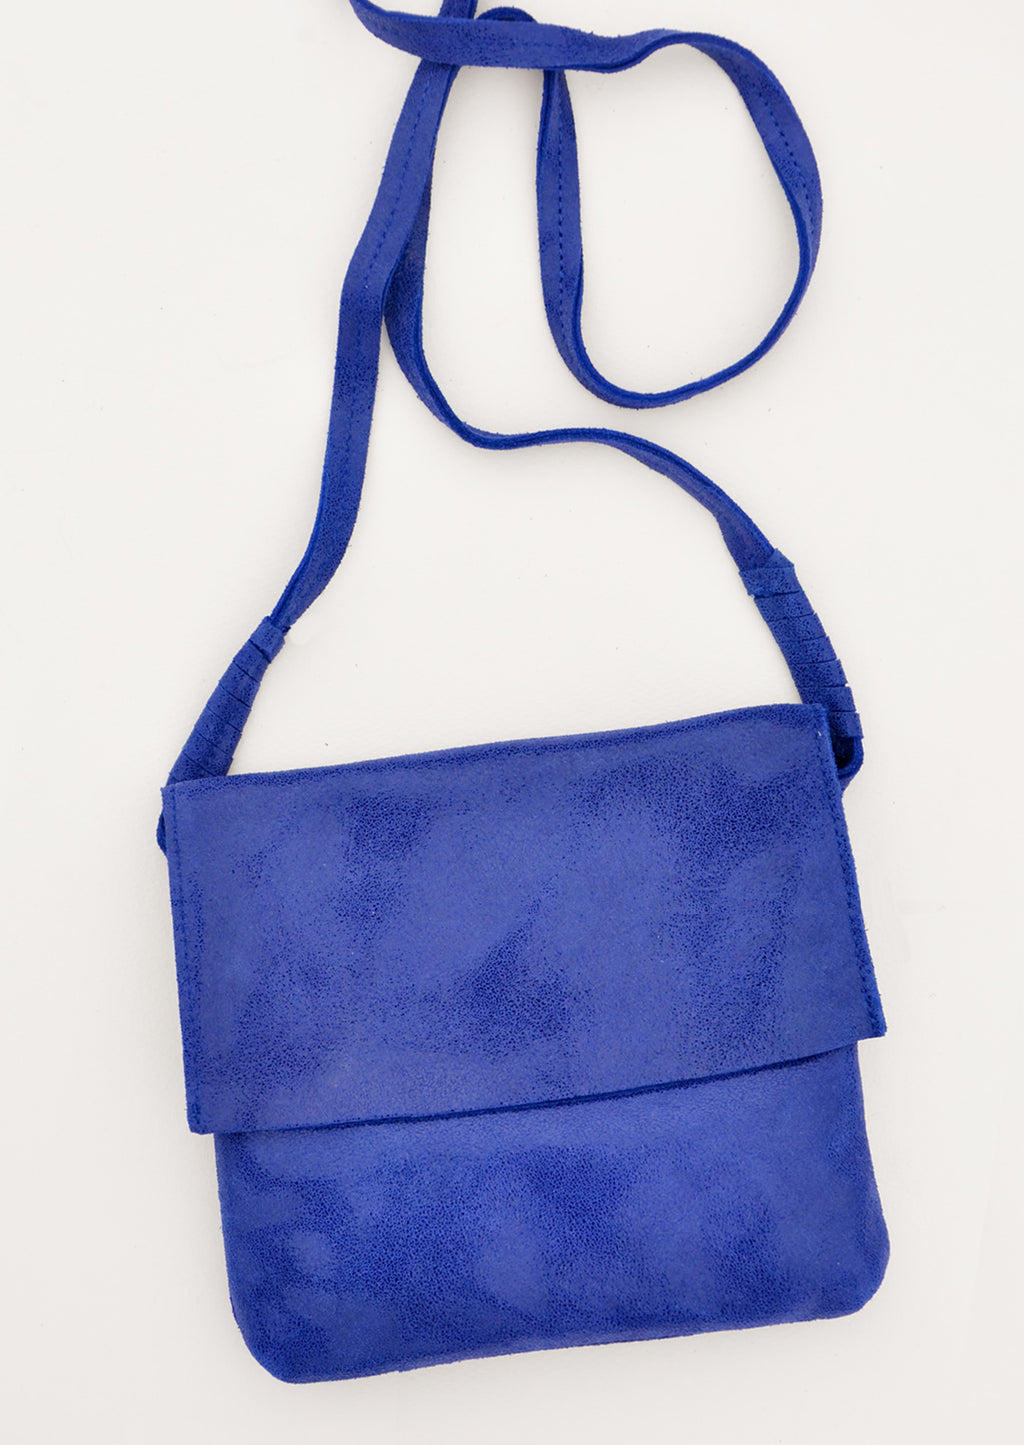 Sapphire: Bright blue soft leather bag with flap closure, cross body strap, and metallic sheen.